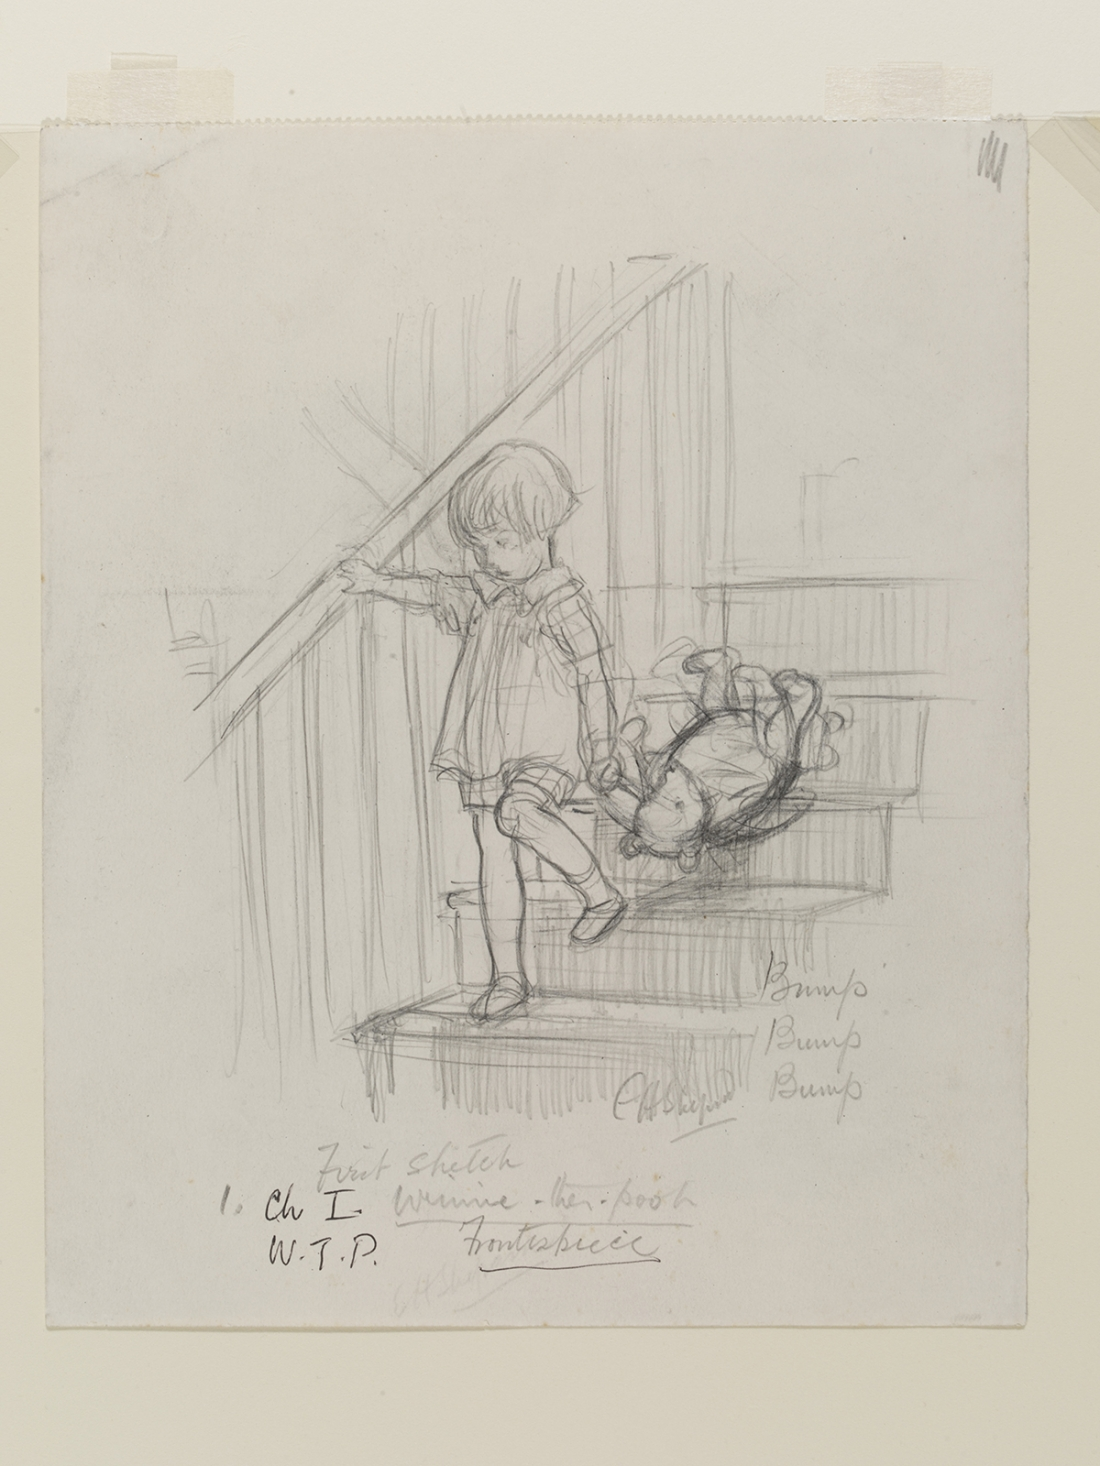 'Bump, bump, bump', Winnie-the-Pooh chapter 1, pencil drawing by E. H. Shephard, 1926. © The Shepard Trust, reproduced with permission from Curtis Brown